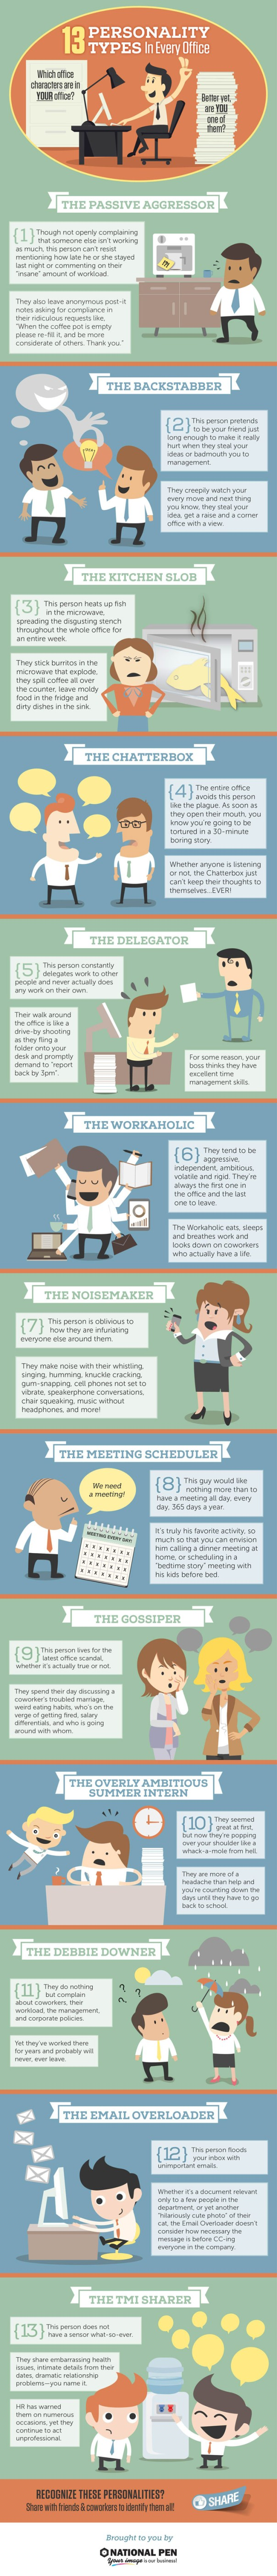 13 Types of Office Personalities